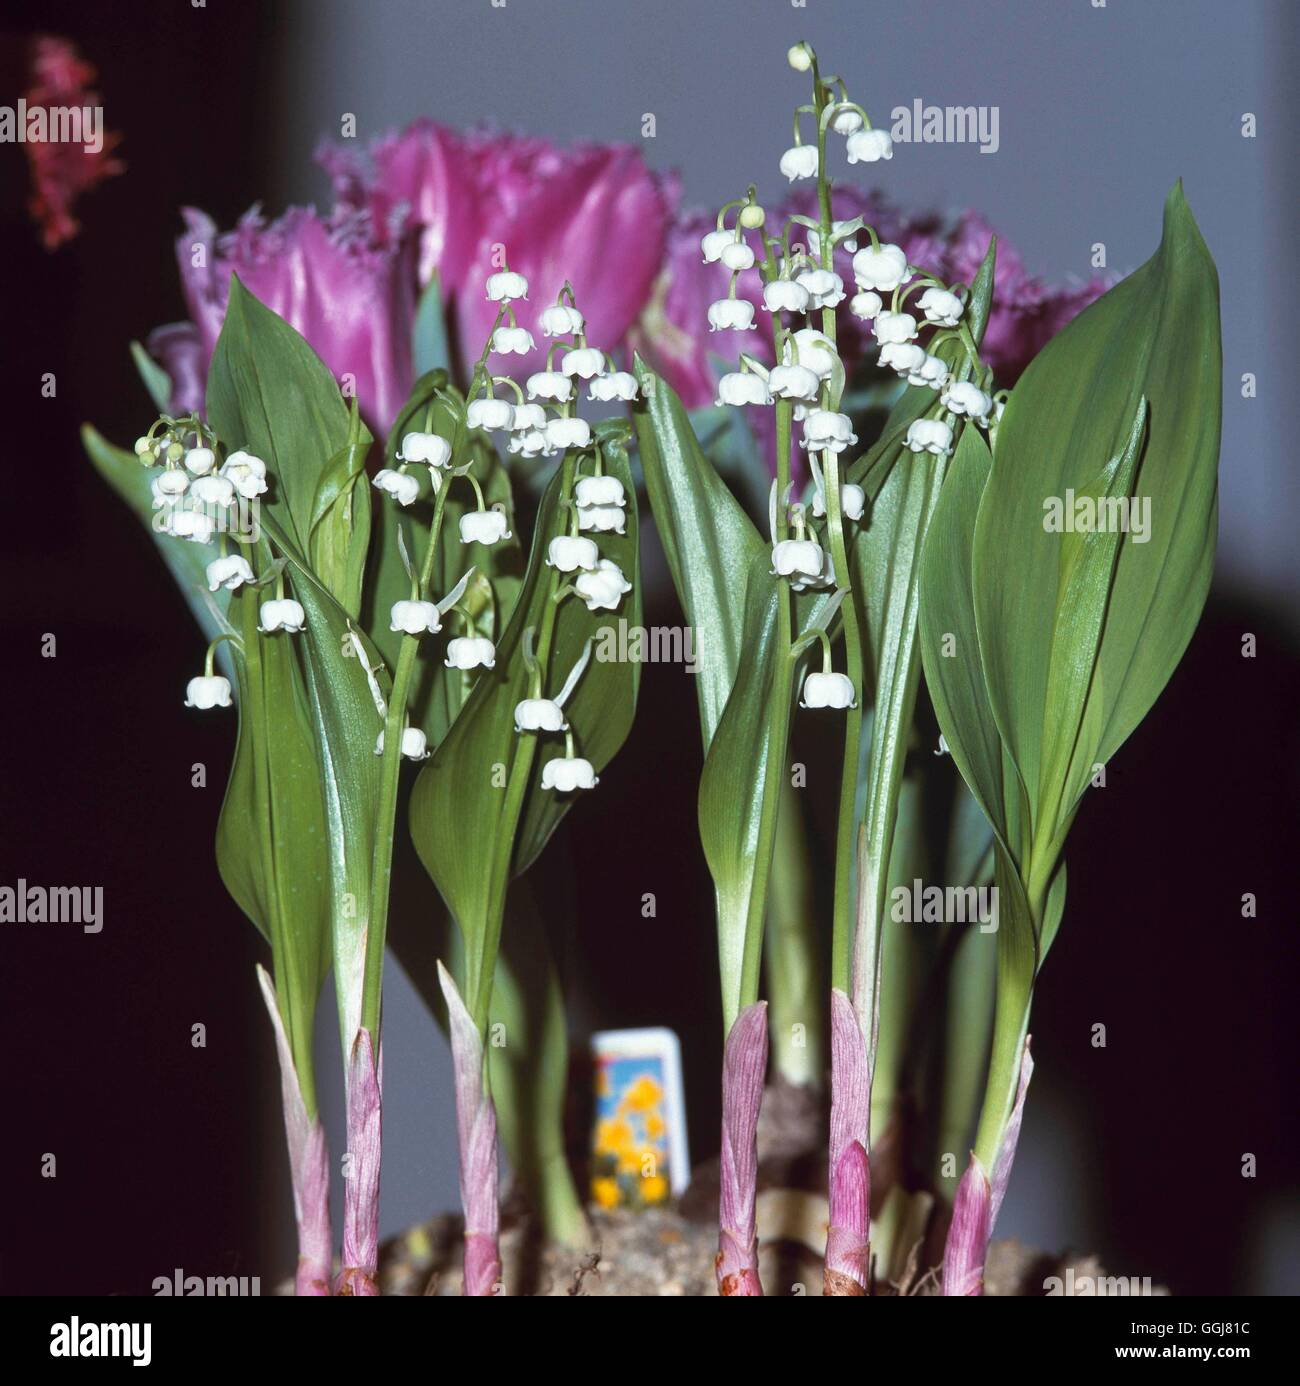 Lilyofthevalley stock photos lilyofthevalley stock images alamy container perennals planted with convallaria majalis agm ctr107233 ph stock image izmirmasajfo